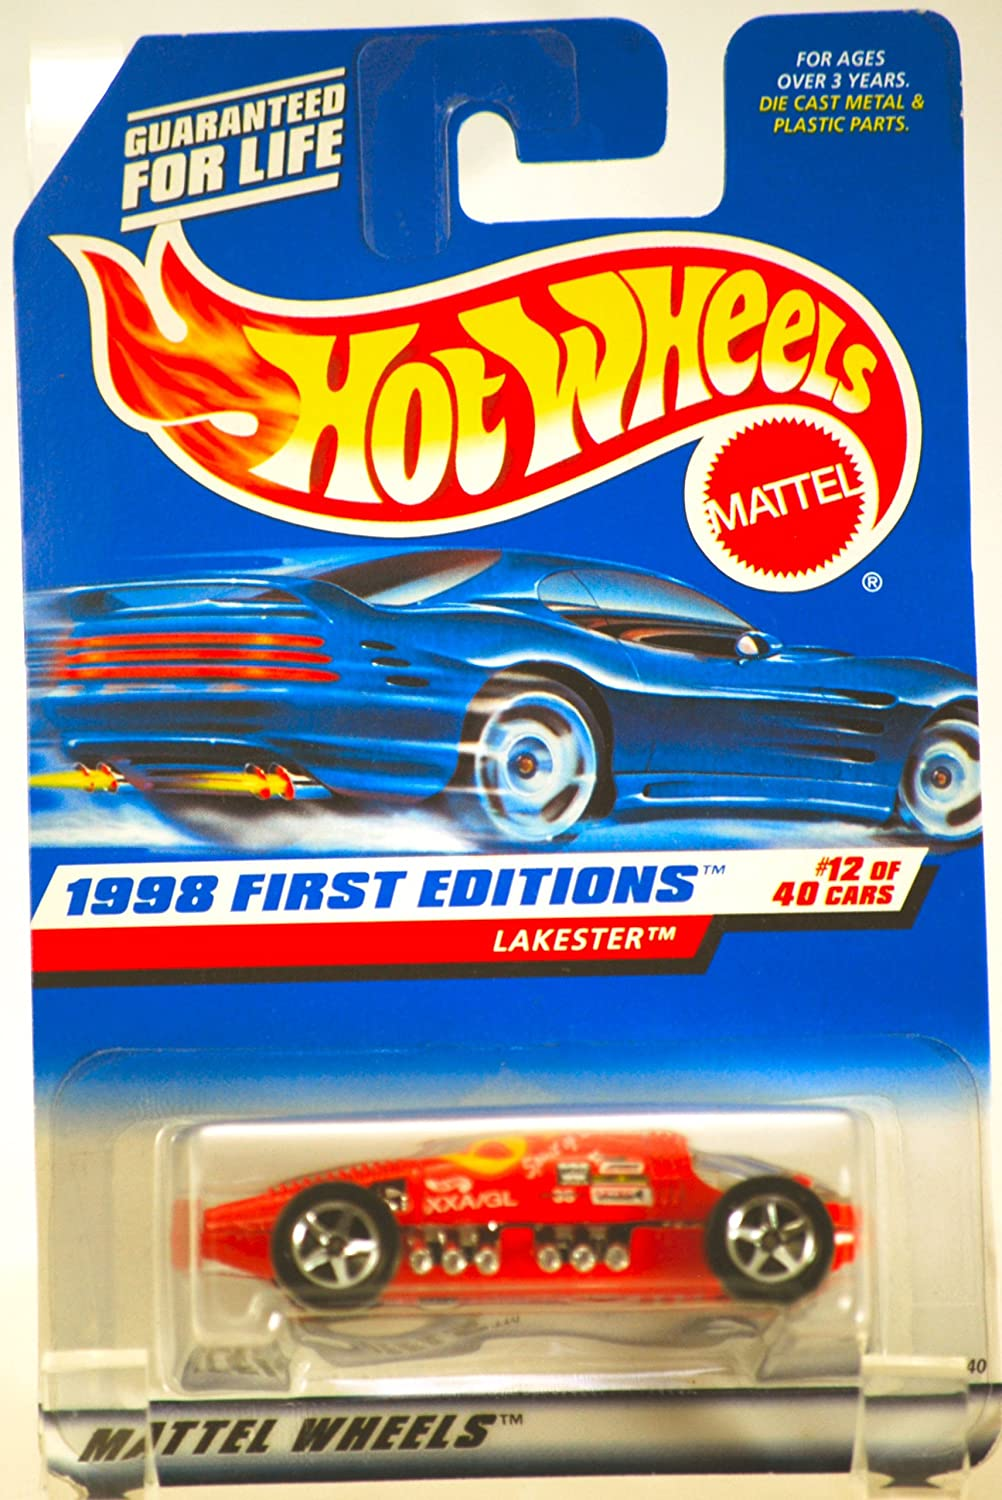 Mattel Hot Wheels 1998 First Editions 1:64 Scale ROT Tow Jam Die Cast Car  025